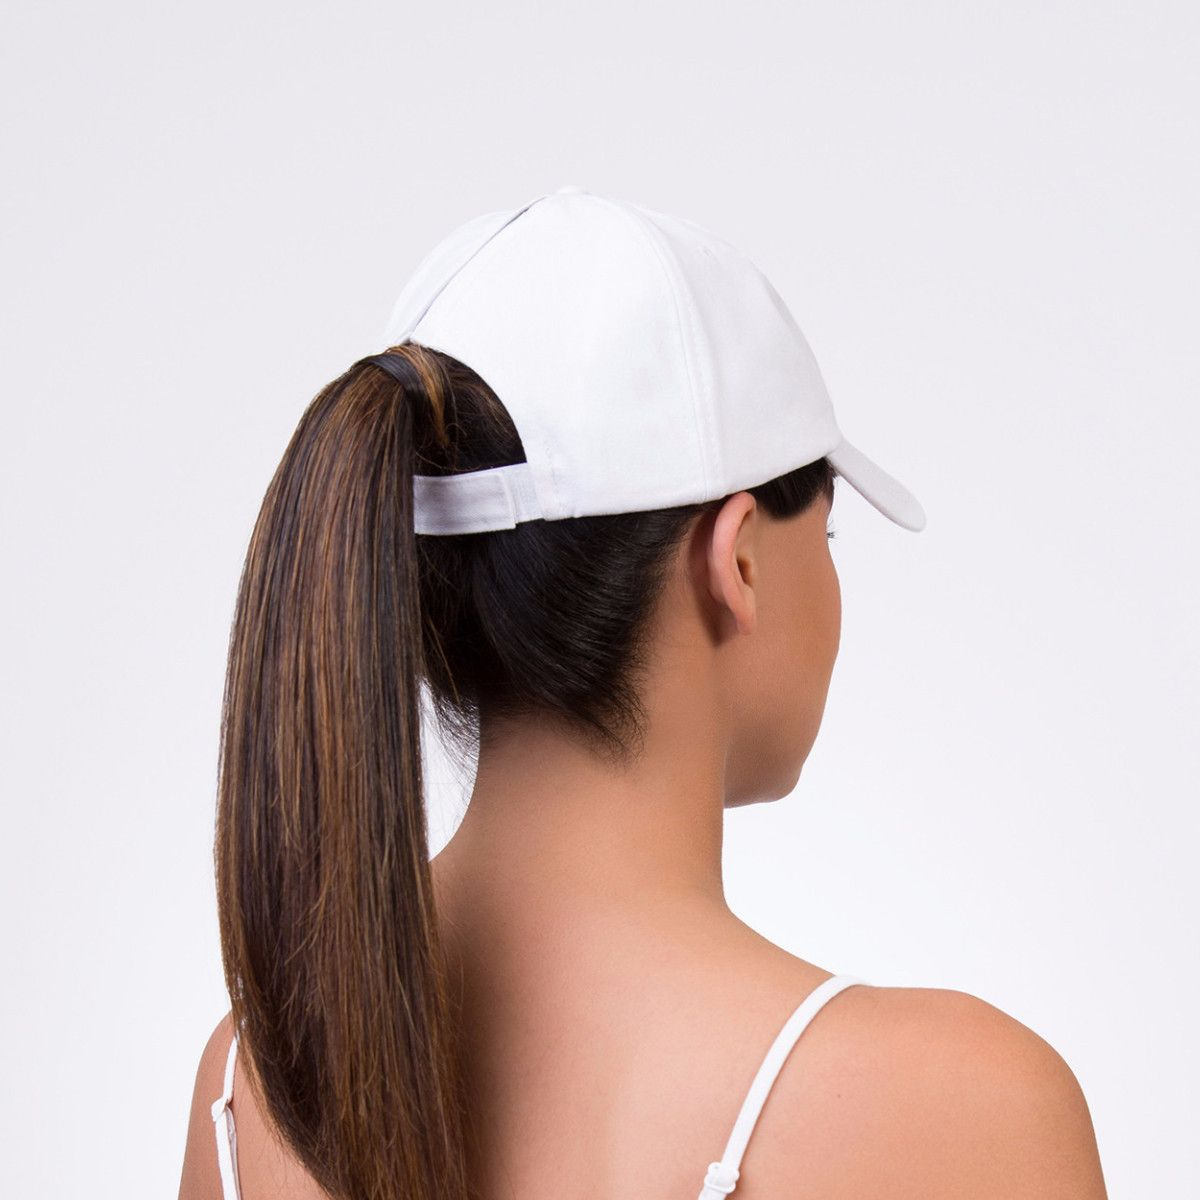 6ecad1945d4 Daffodil Sprinkles - Ponytail Baseball Cap in 2019 | hairstyles ...